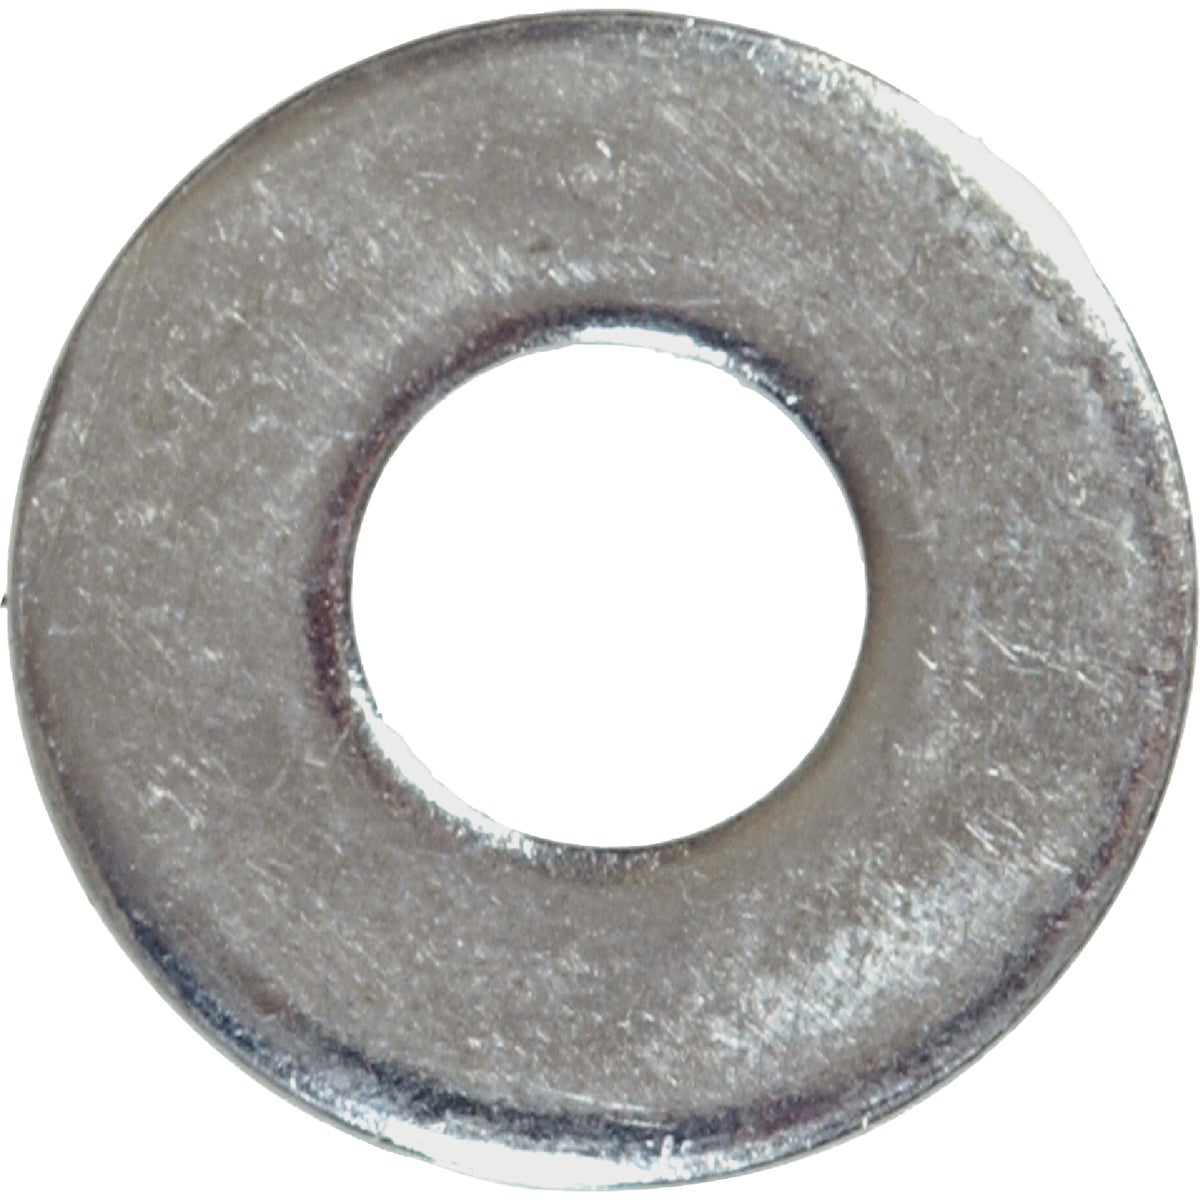 "100PC 3/16""USS FL WASHER - 270052 by Hillman Fastener"